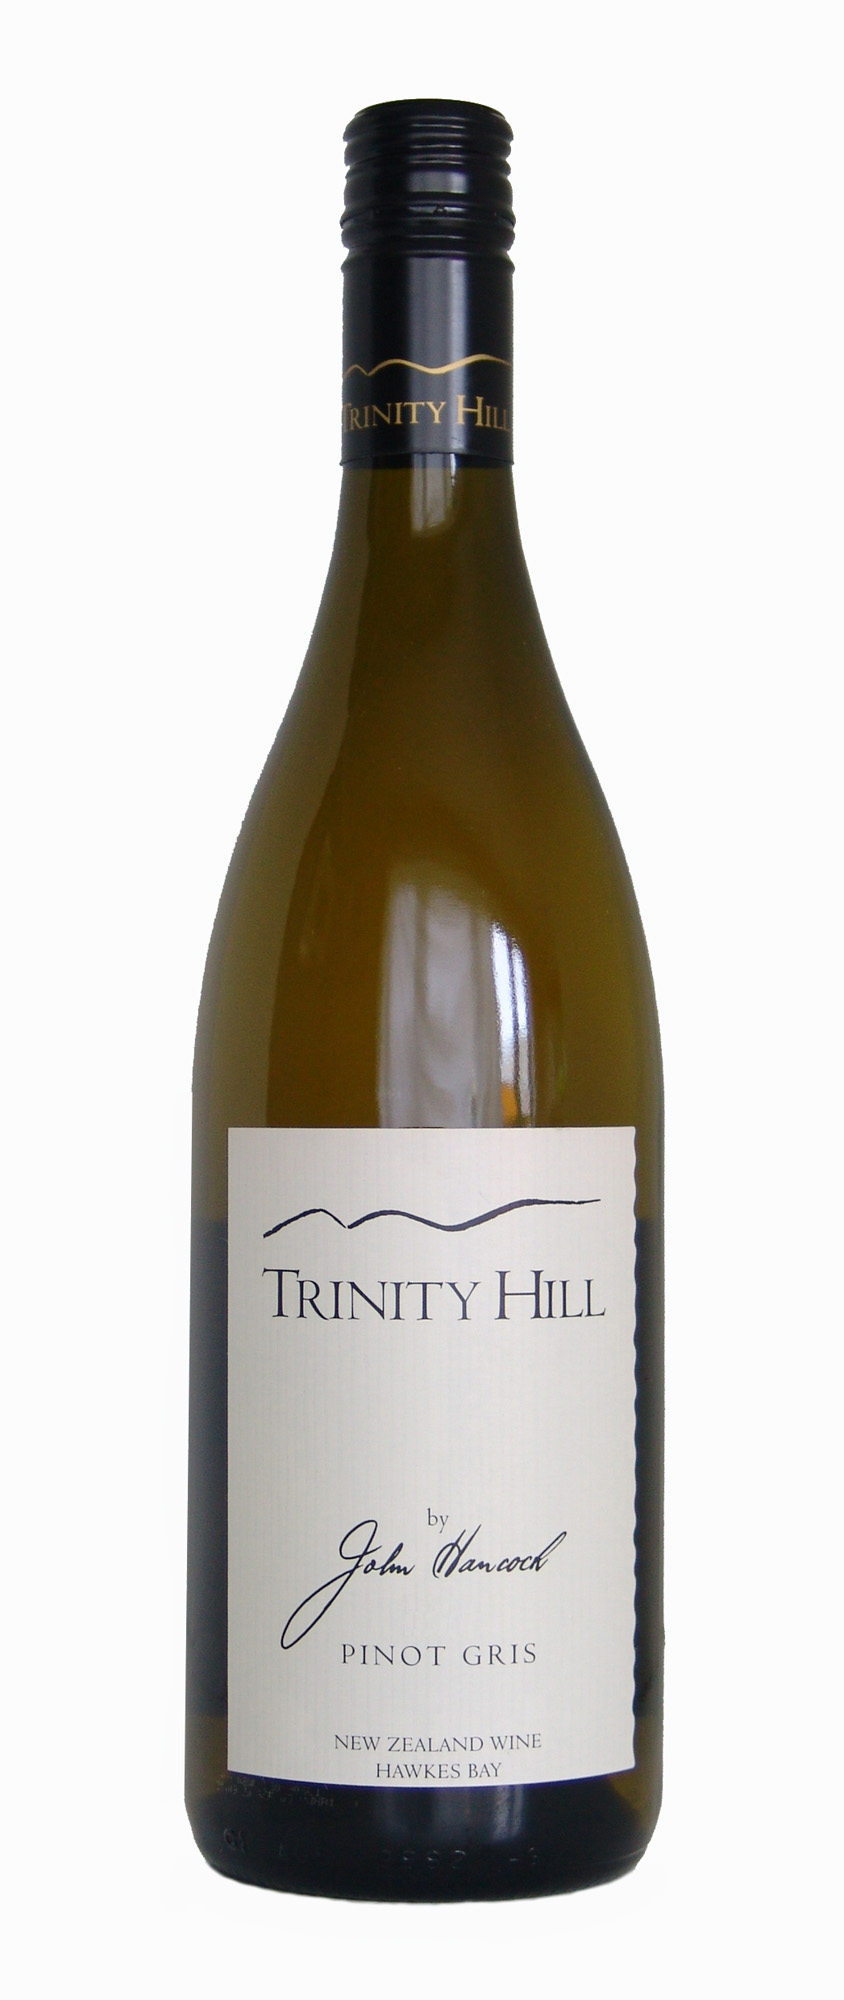 Trinity Hill Hawkes Bay, Pinot Gris 2012